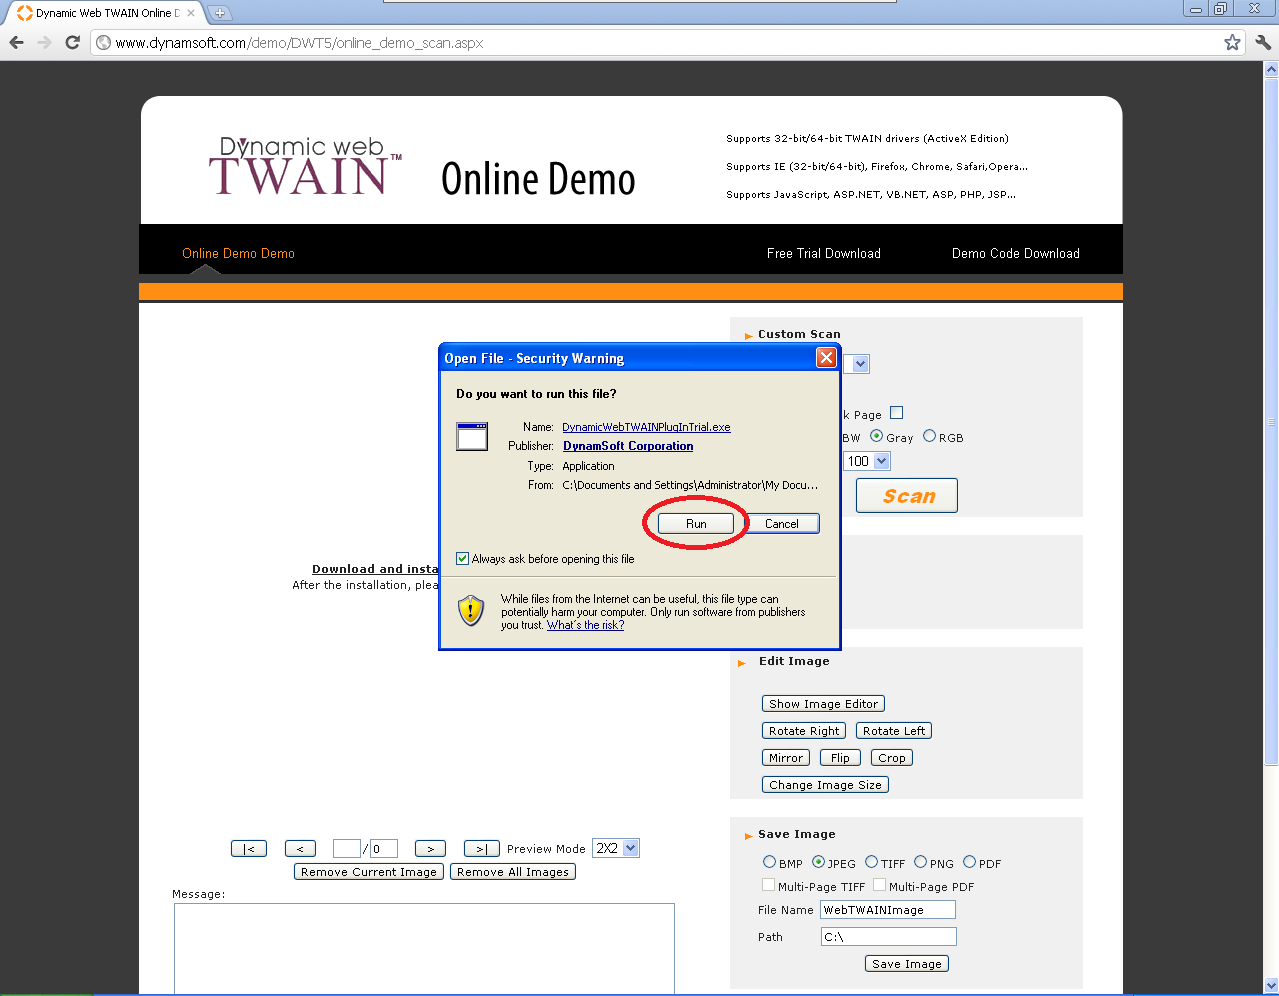 Step by Step Walk-Through on how to install Dynamic Web